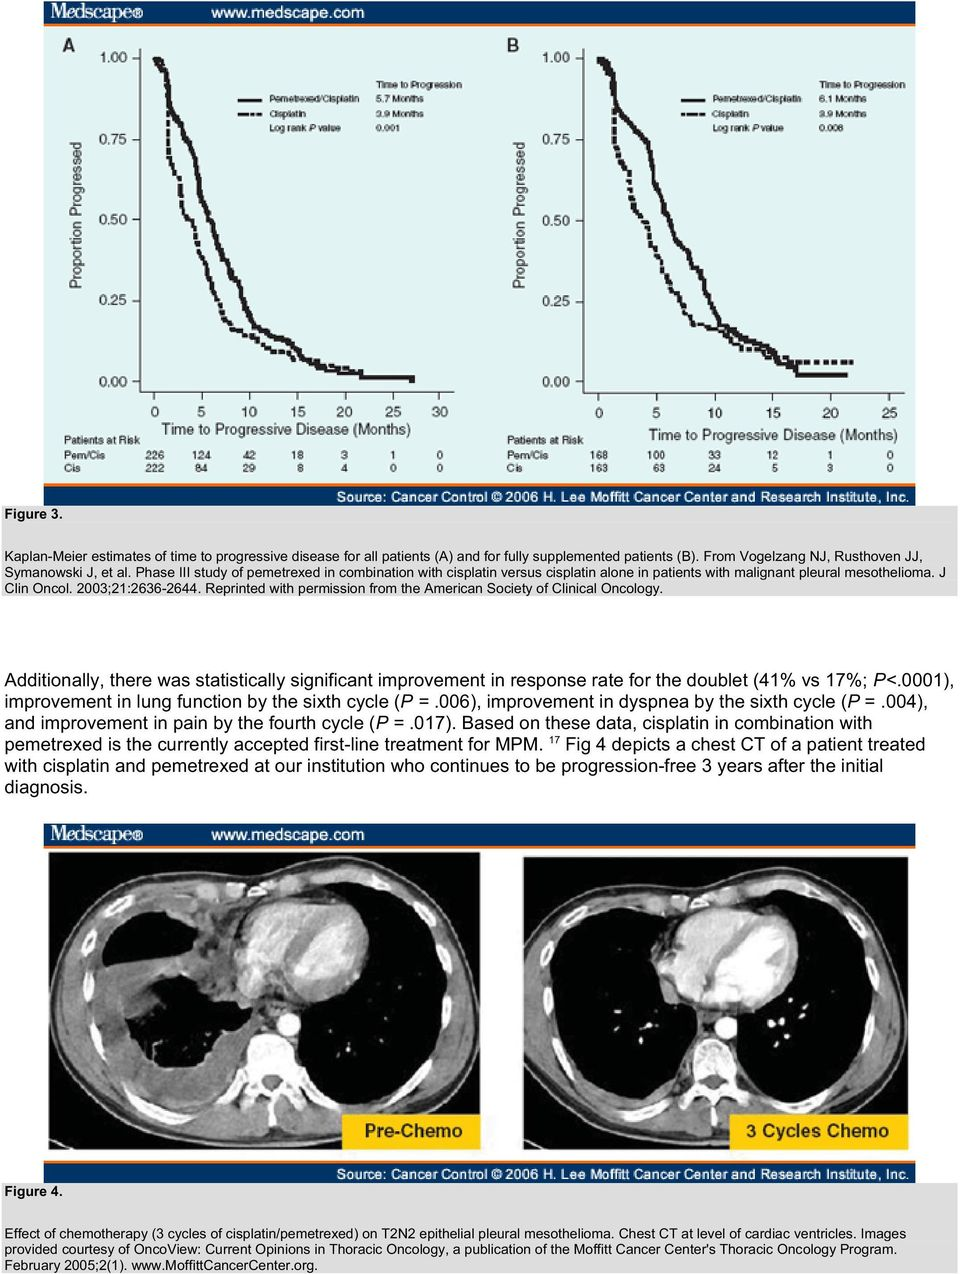 Reprinted with permission from the American Society of Clinical Oncology. Additionally, there was statistically significant improvement in response rate for the doublet (41% vs 17%; P<.